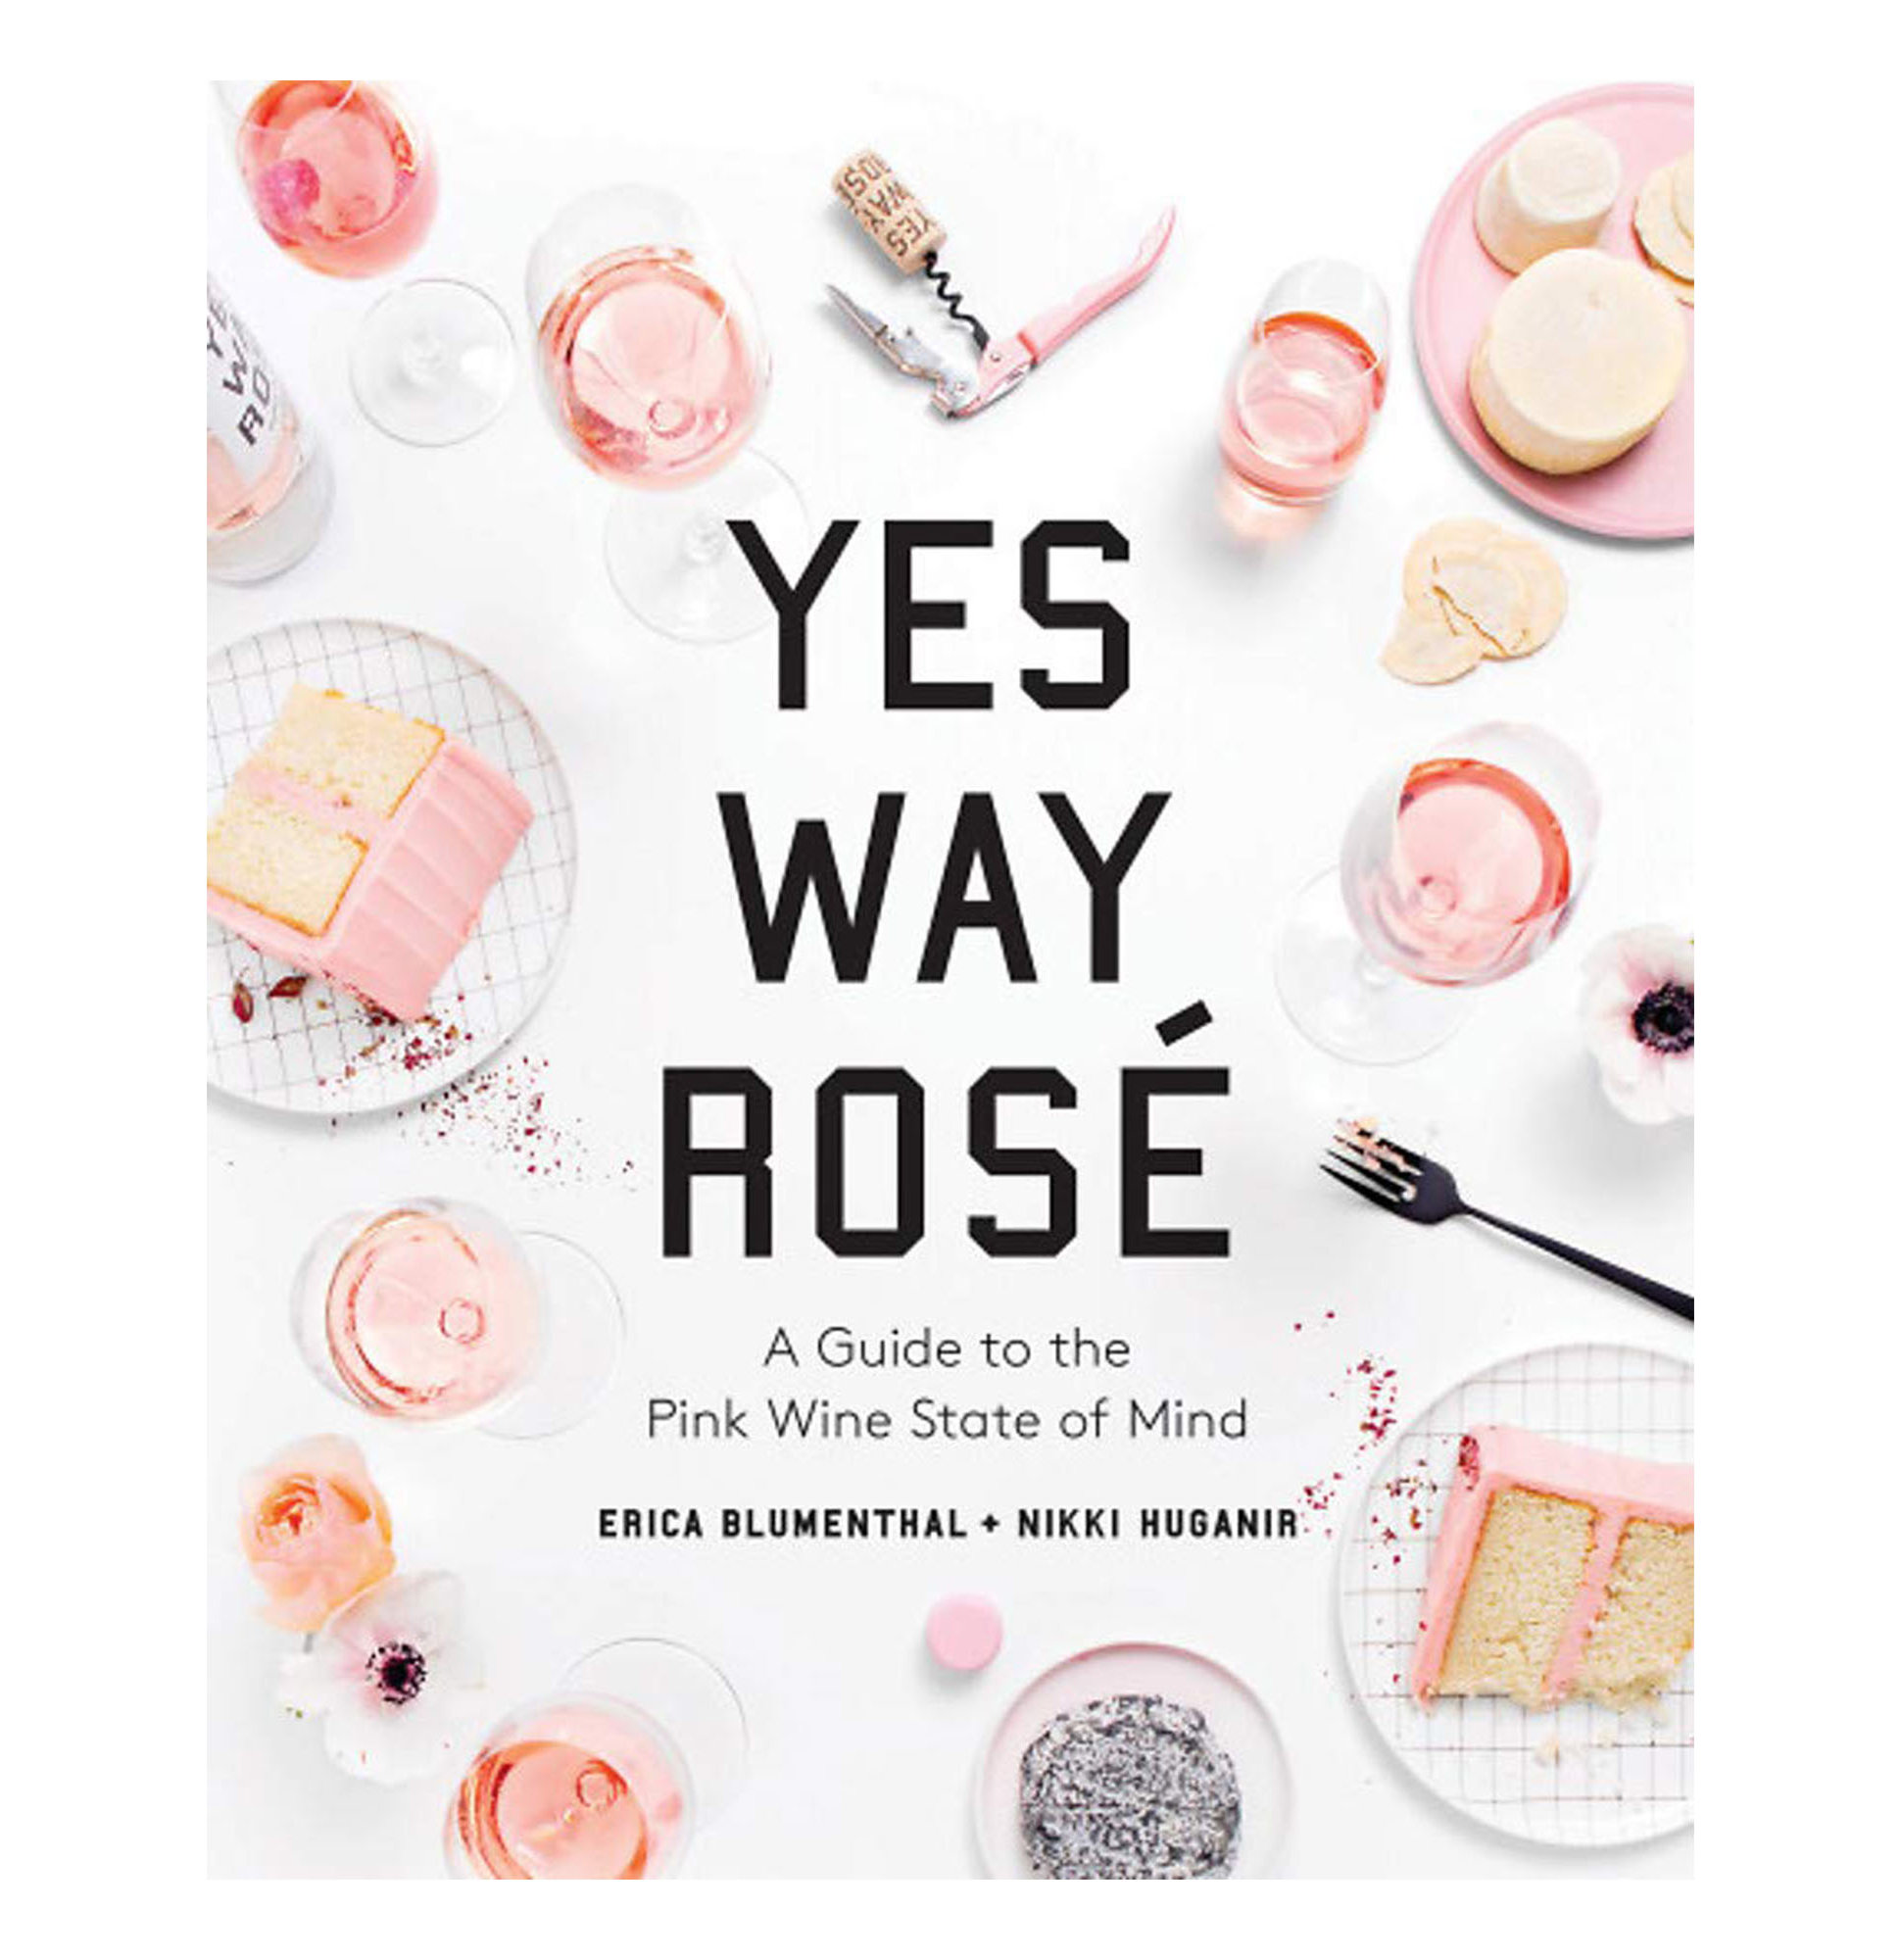 Yes Way Rosé: A Guide to the Pink Wine State of Mind